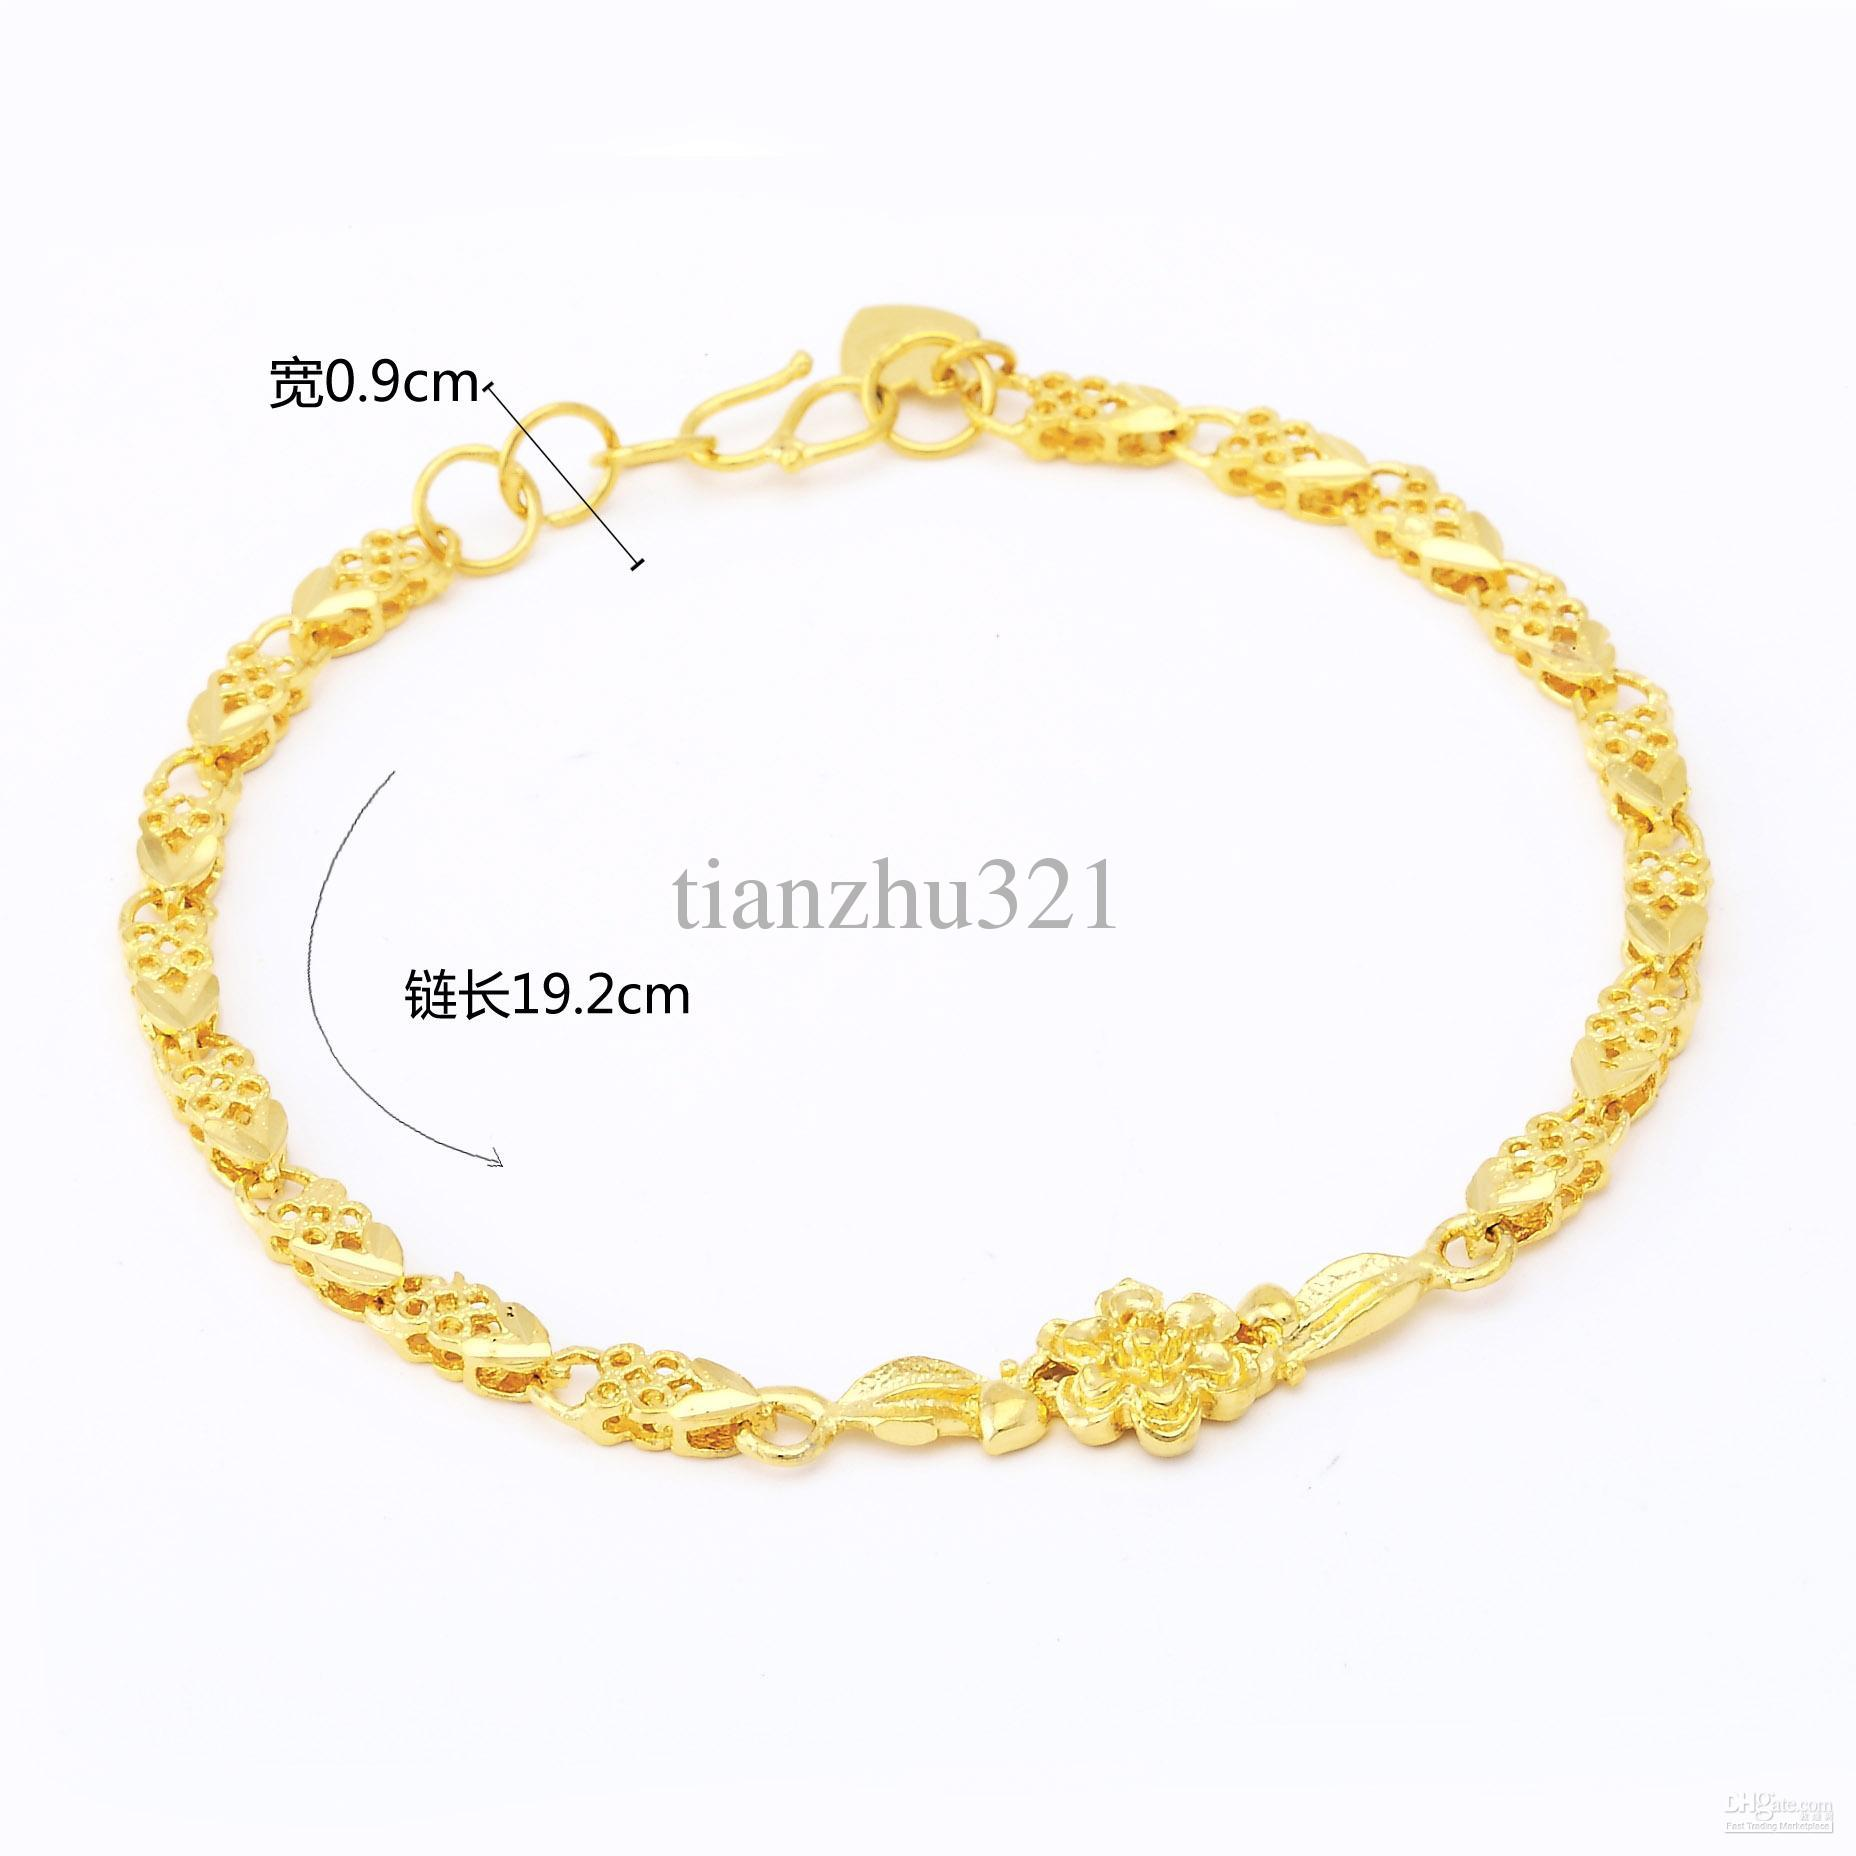 2016 Beautiufl Yellow Gold Lady's Nice Design Bracelet From Tianzhu321 ...: www.dhgate.com/product/beautiufl-yellow-gold-lady-s-nice-design...